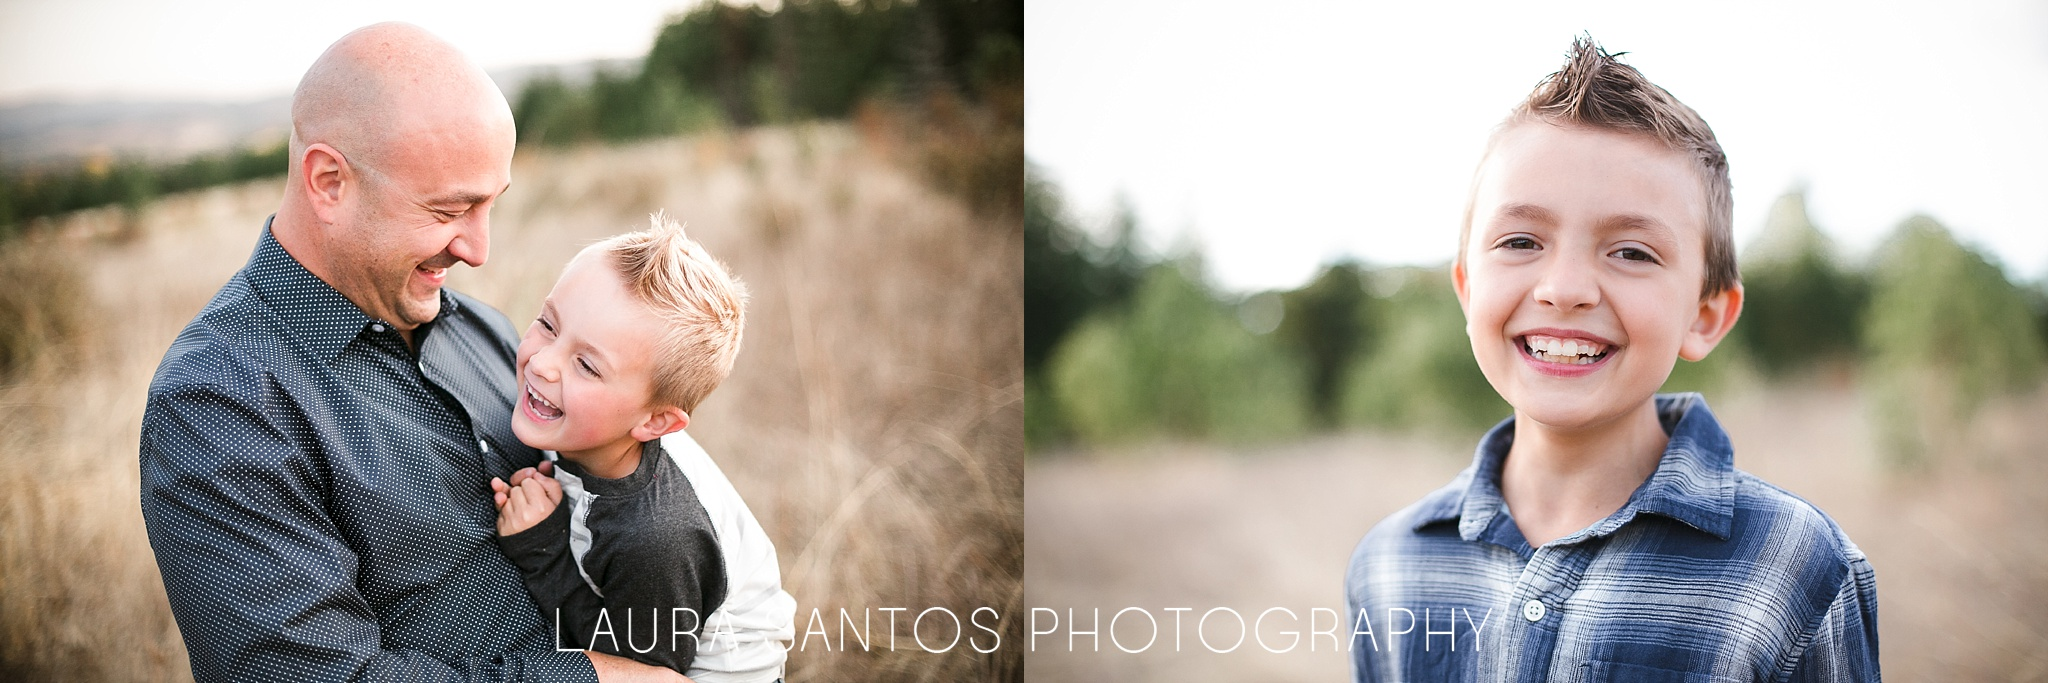 Laura Santos Photography Portland Oregon Family Photographer_0418.jpg